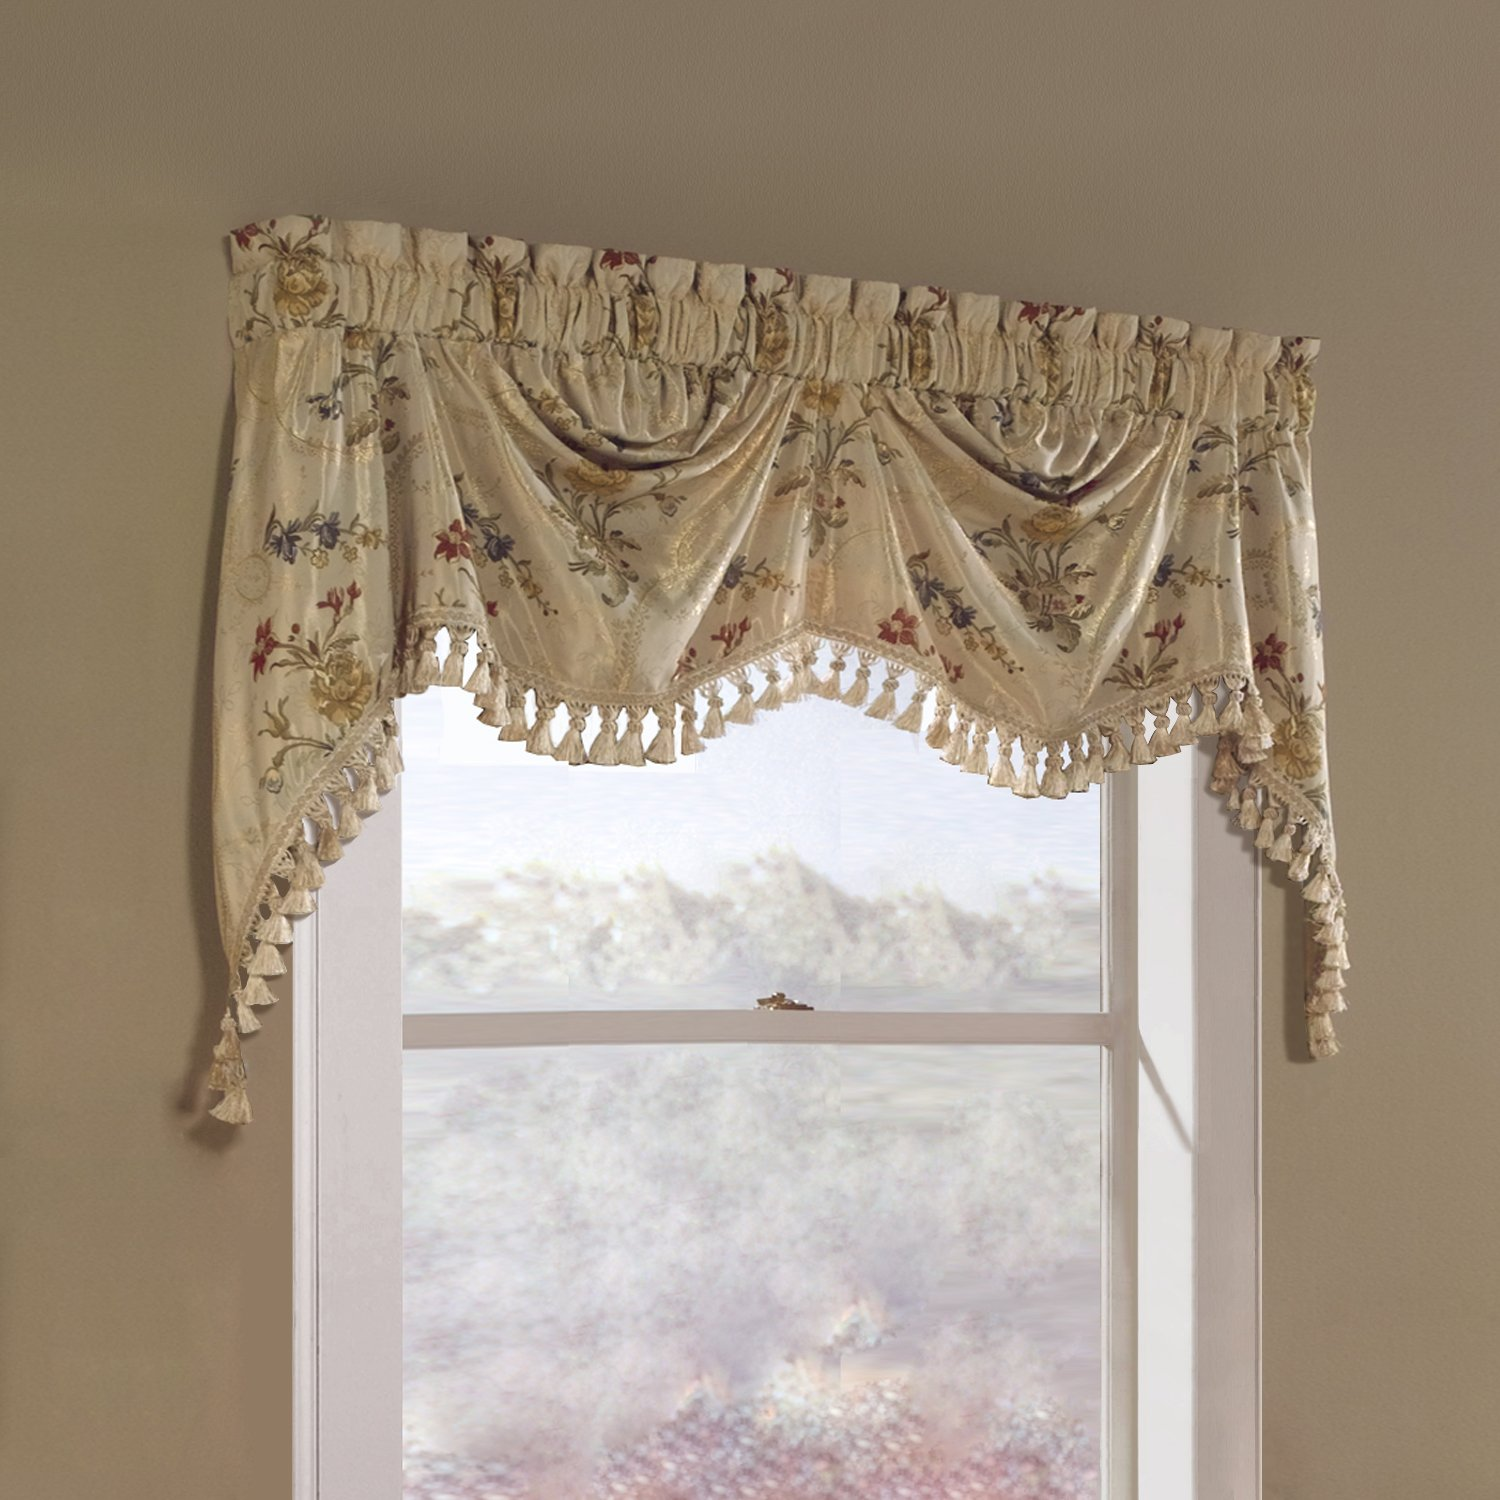 shreman tara aqua pinterest pin beige sweet home valance